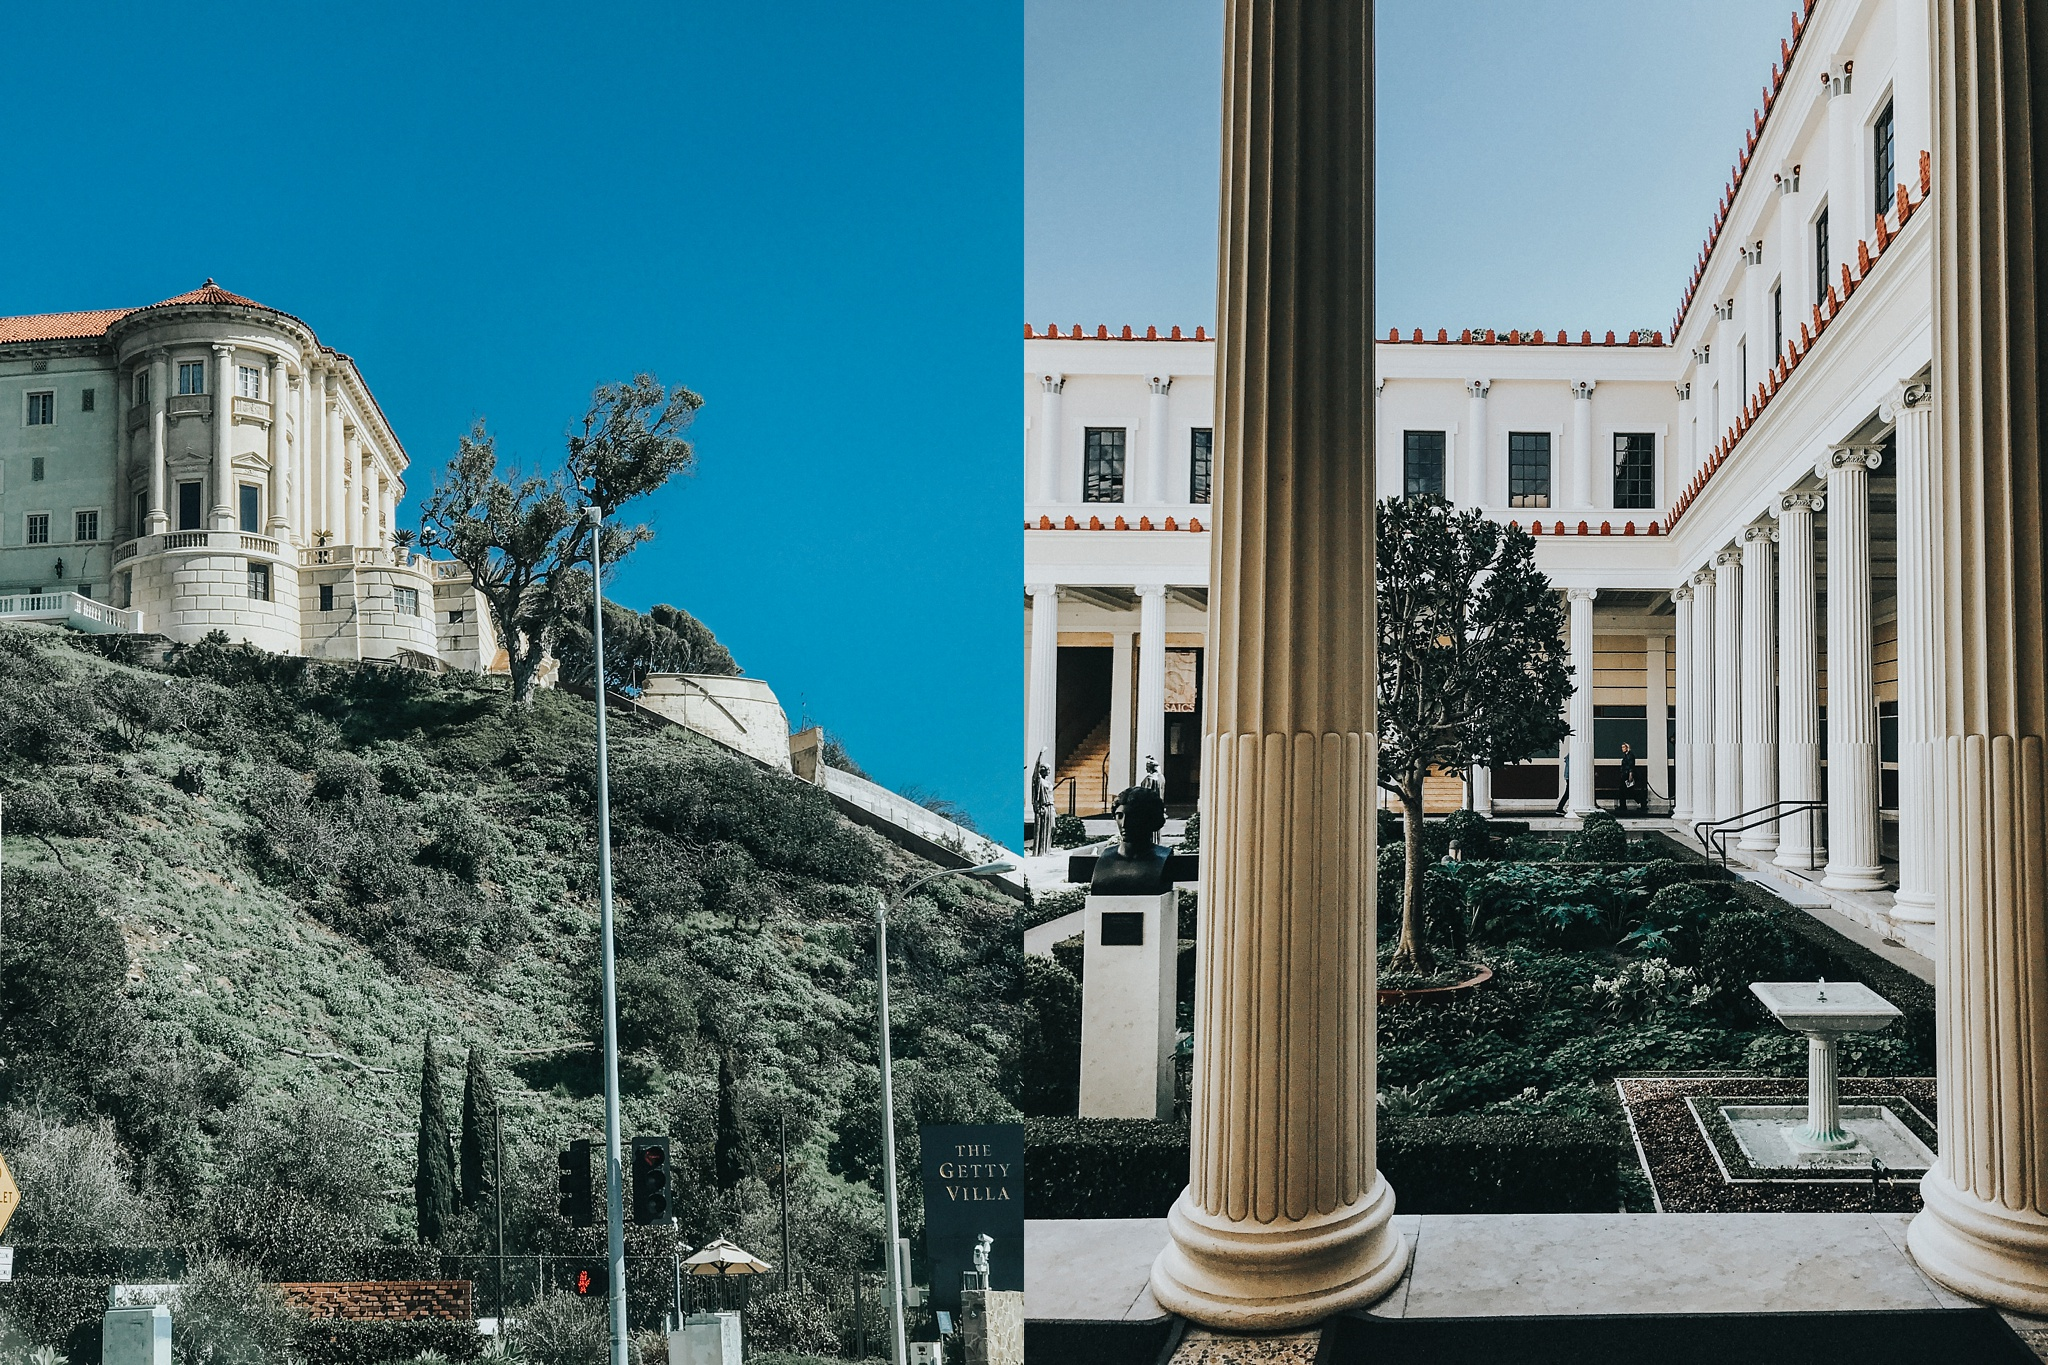 Next stop, heading back towards LA, I stopped at the Getty Villa which wasn't initially on my itinerary but I was SO glad I went. It was STUNNING.